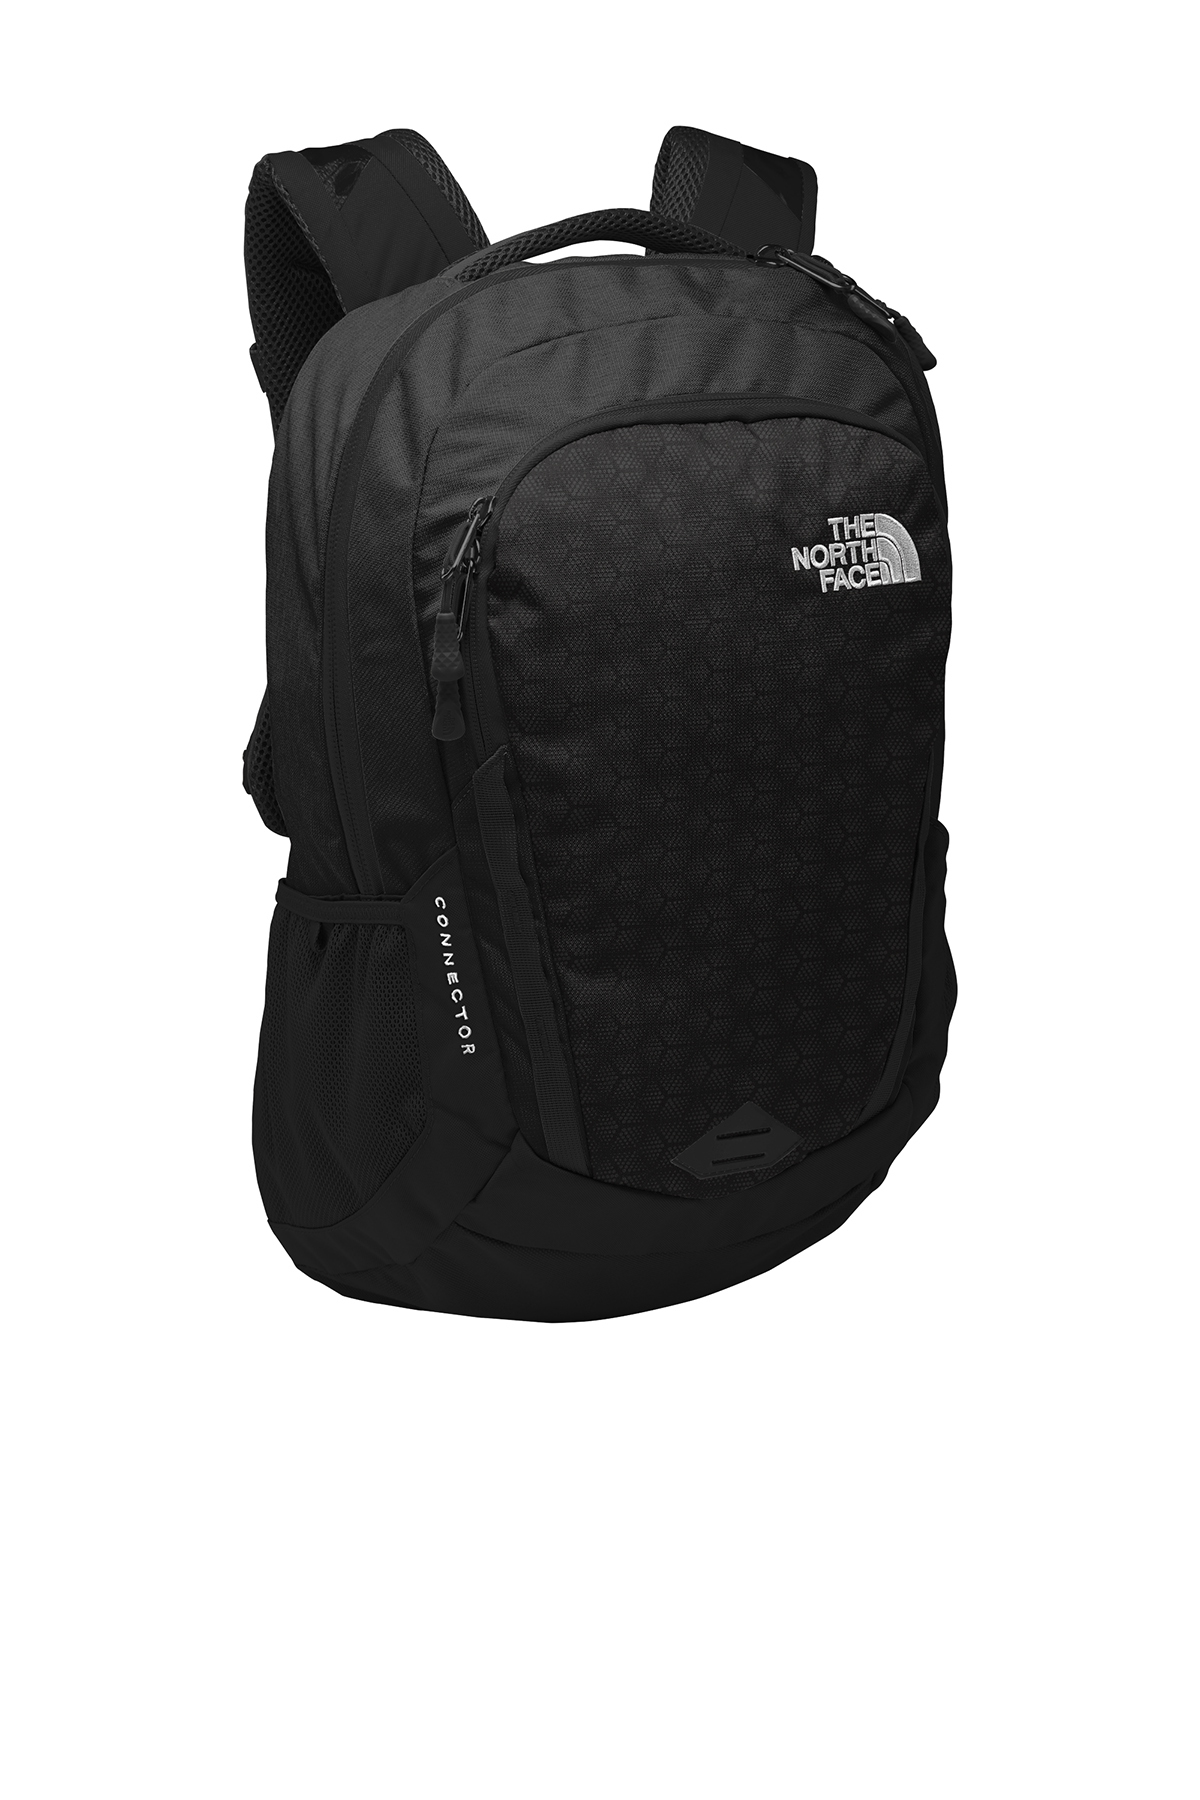 3e14dbe647 The North Face ® Connector Backpack | The North Face | Brands ...